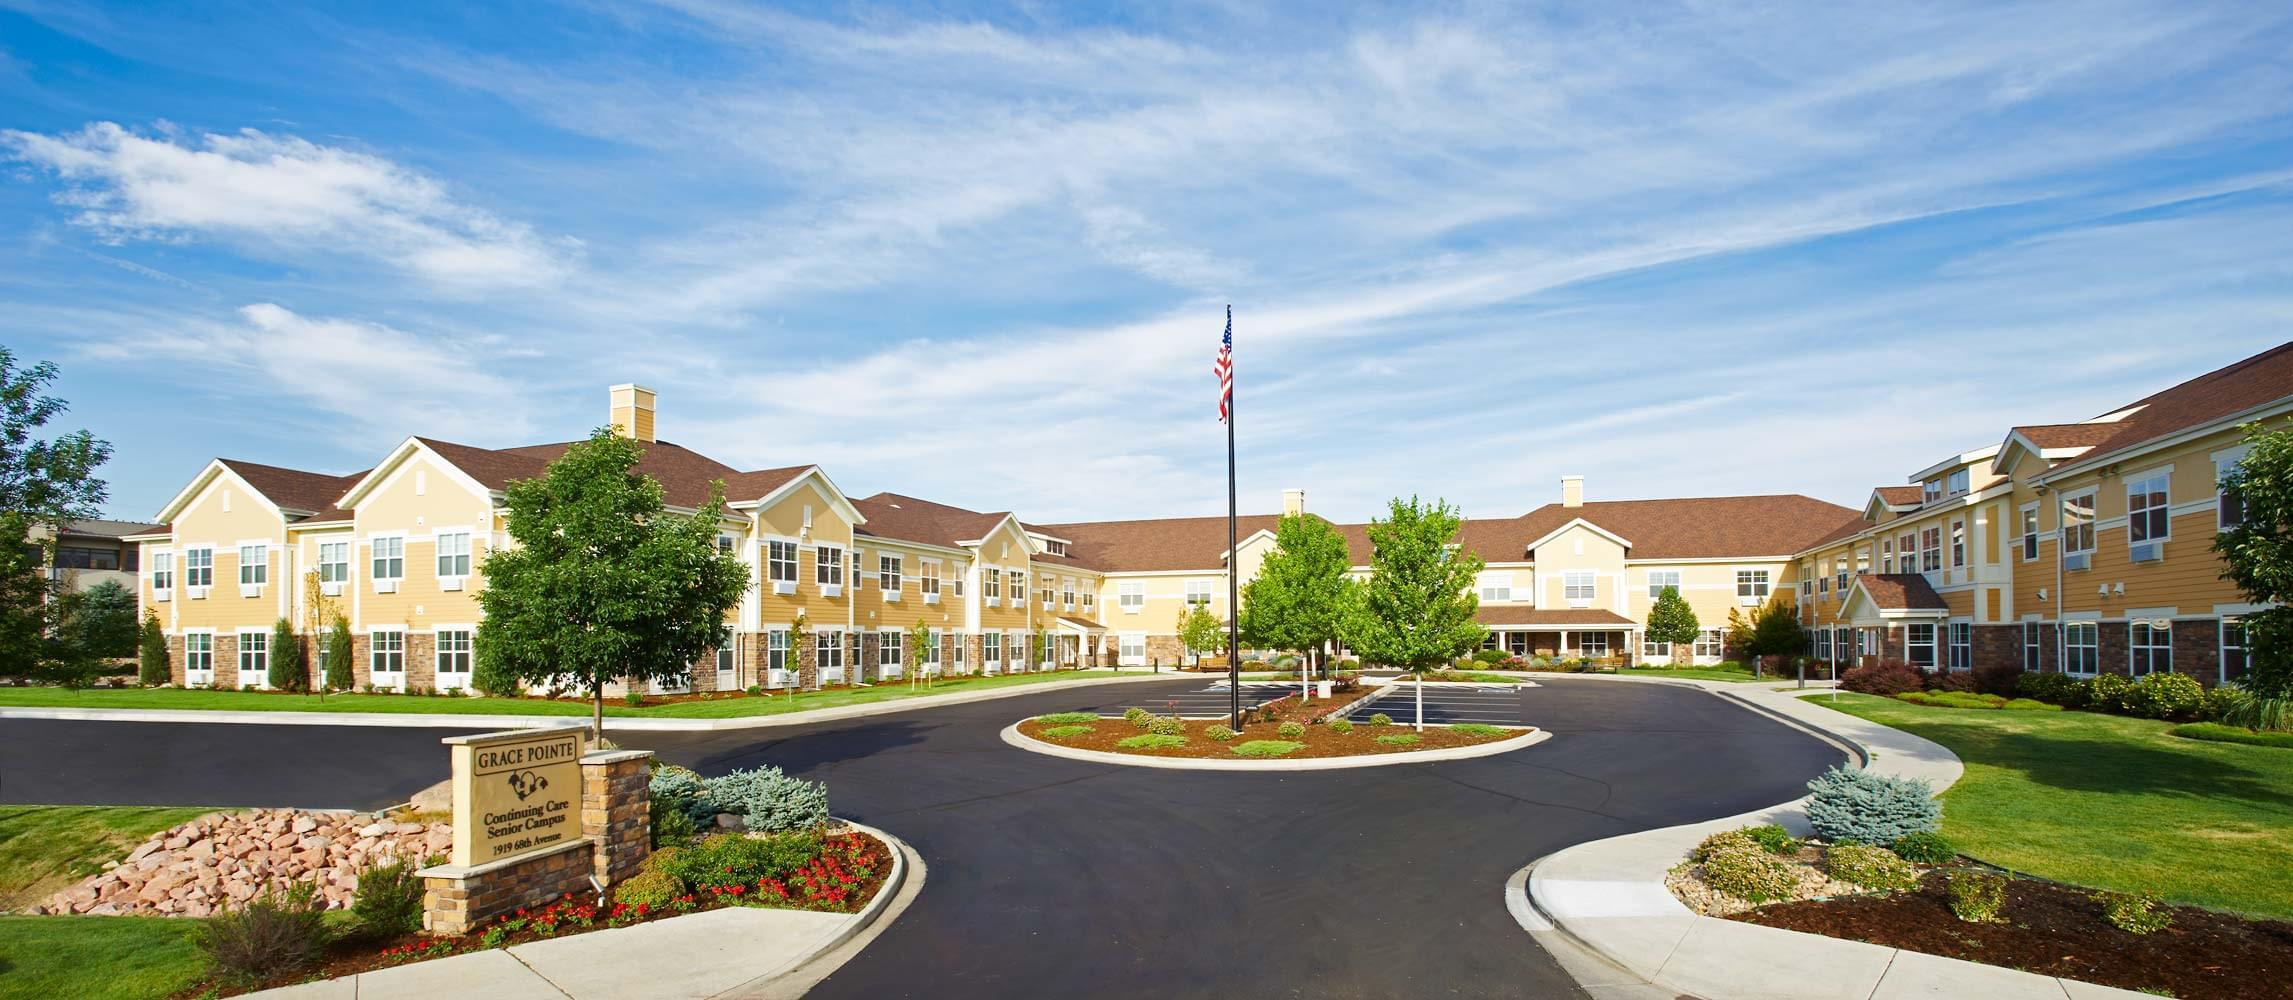 Photo of Grace Pointe Greeley, Assisted Living, Nursing Home, Independent Living, CCRC, Greeley, CO 3